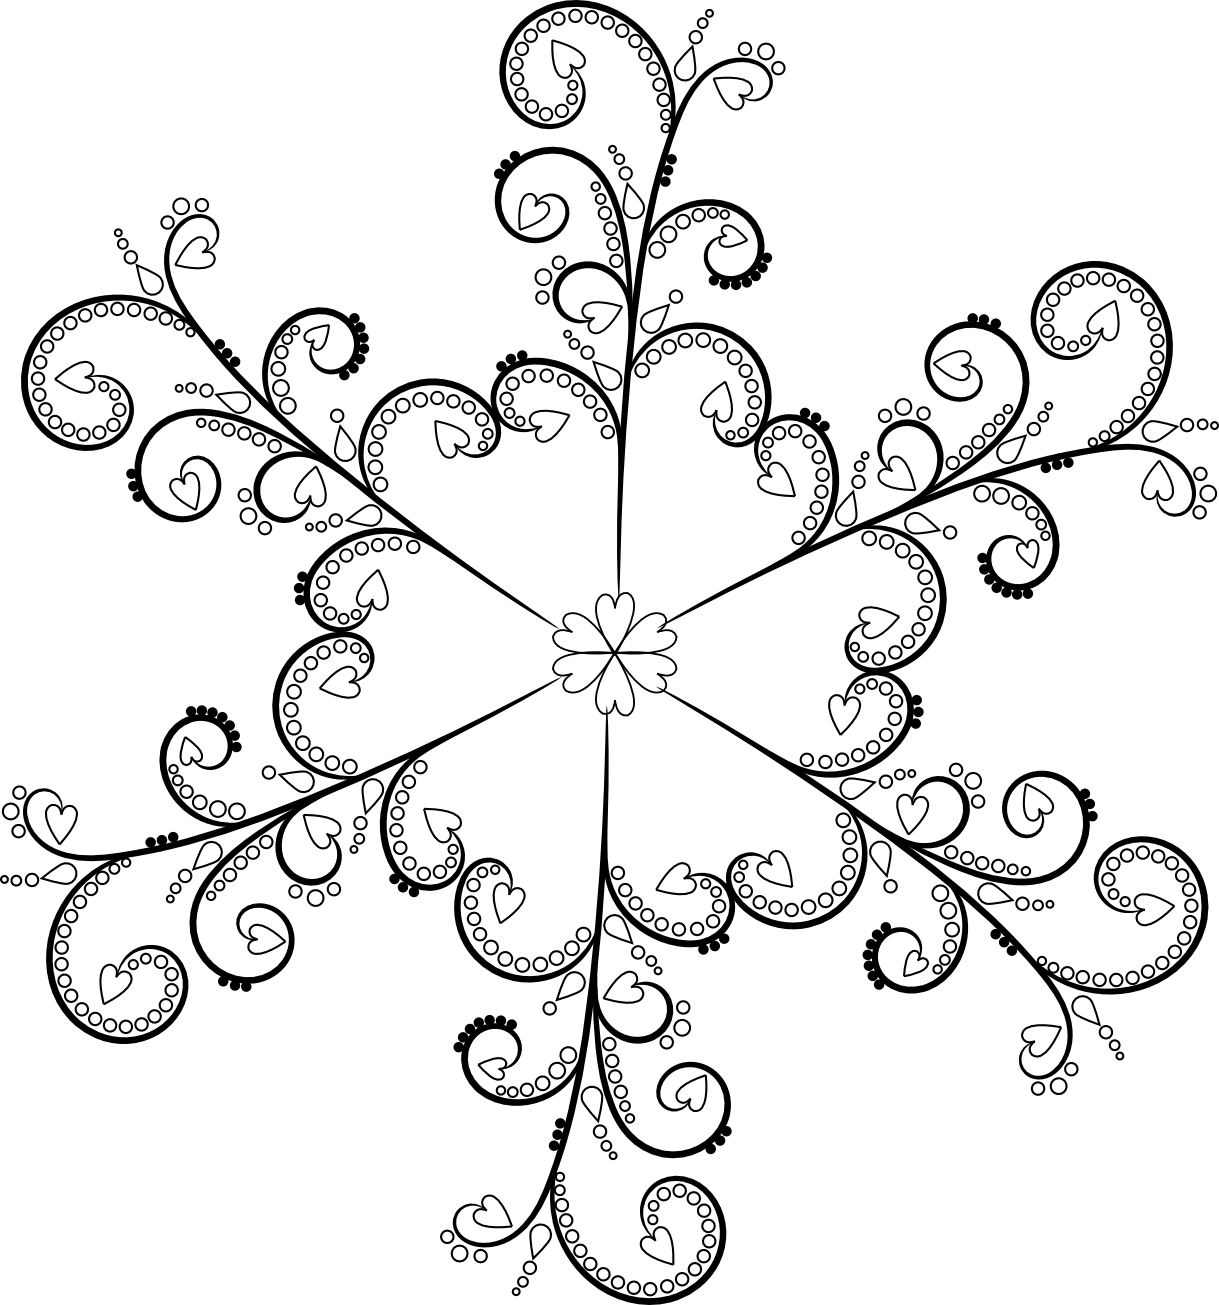 Black and white snowflake border clipart png black and white library Free Snowflake Patterns Clipart | jokingart.com Snowflake Clipart png black and white library